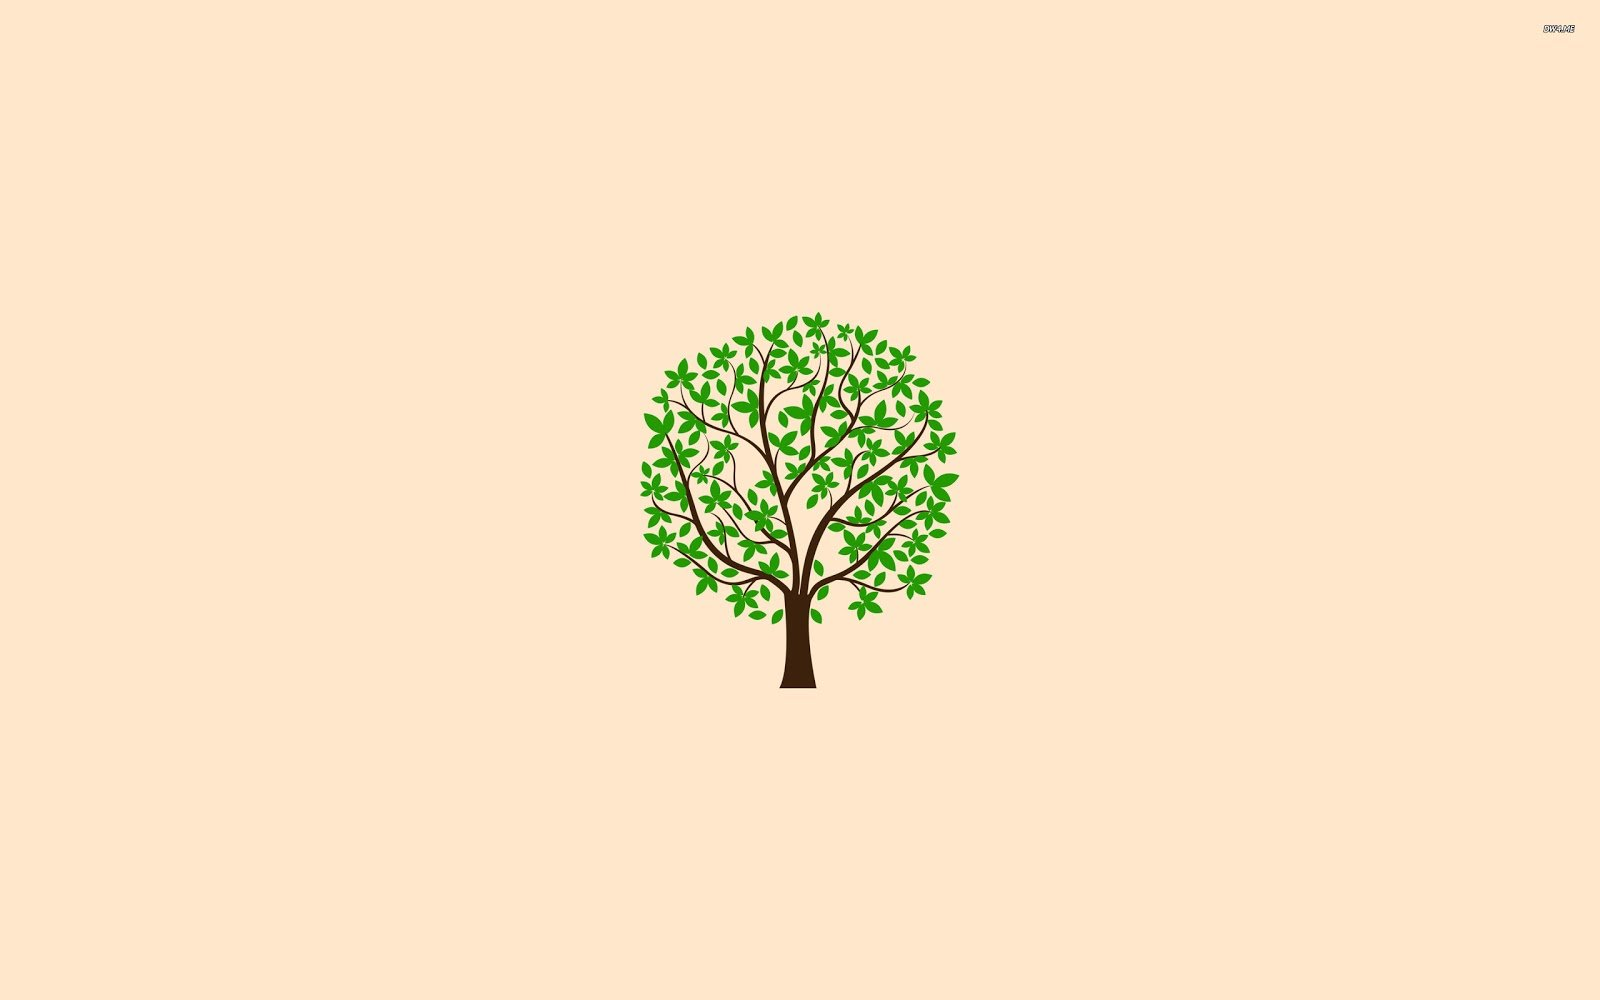 1231 spring tree 2560x1600 minimalistic wallpaper